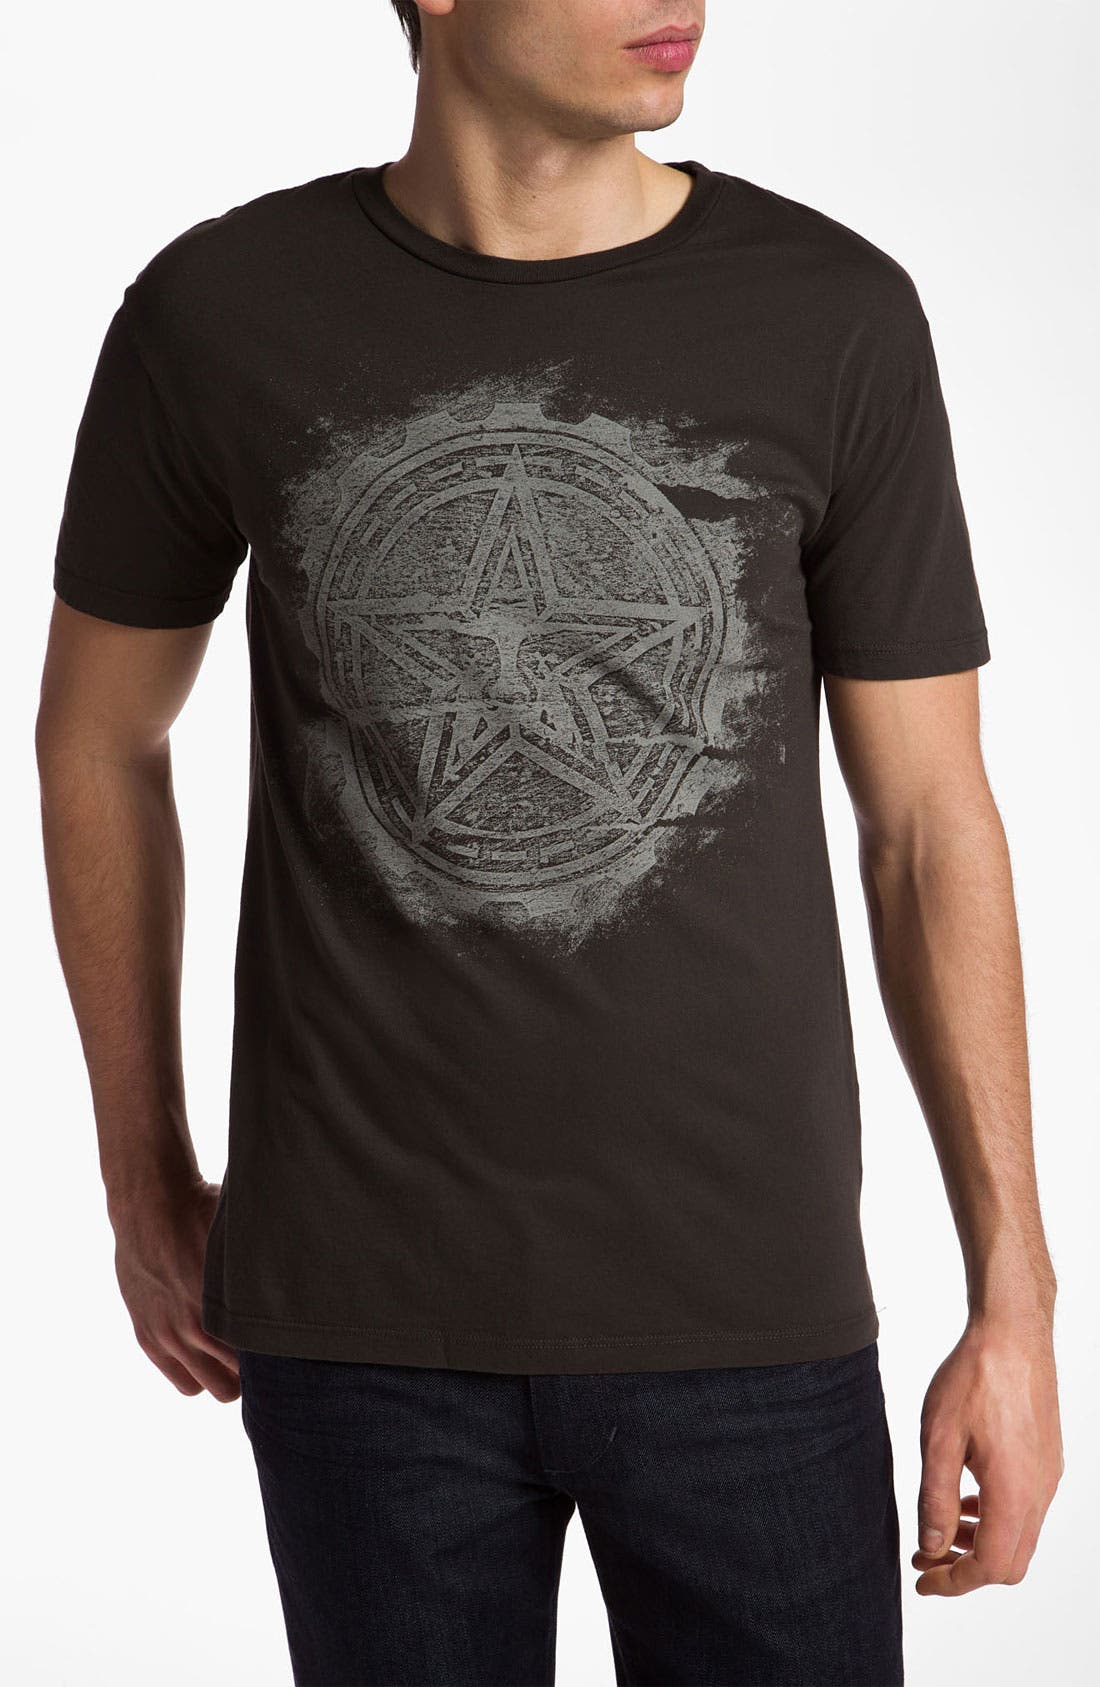 Alternate Image 1 Selected - Obey 'Trashed Star' Graphic T-Shirt